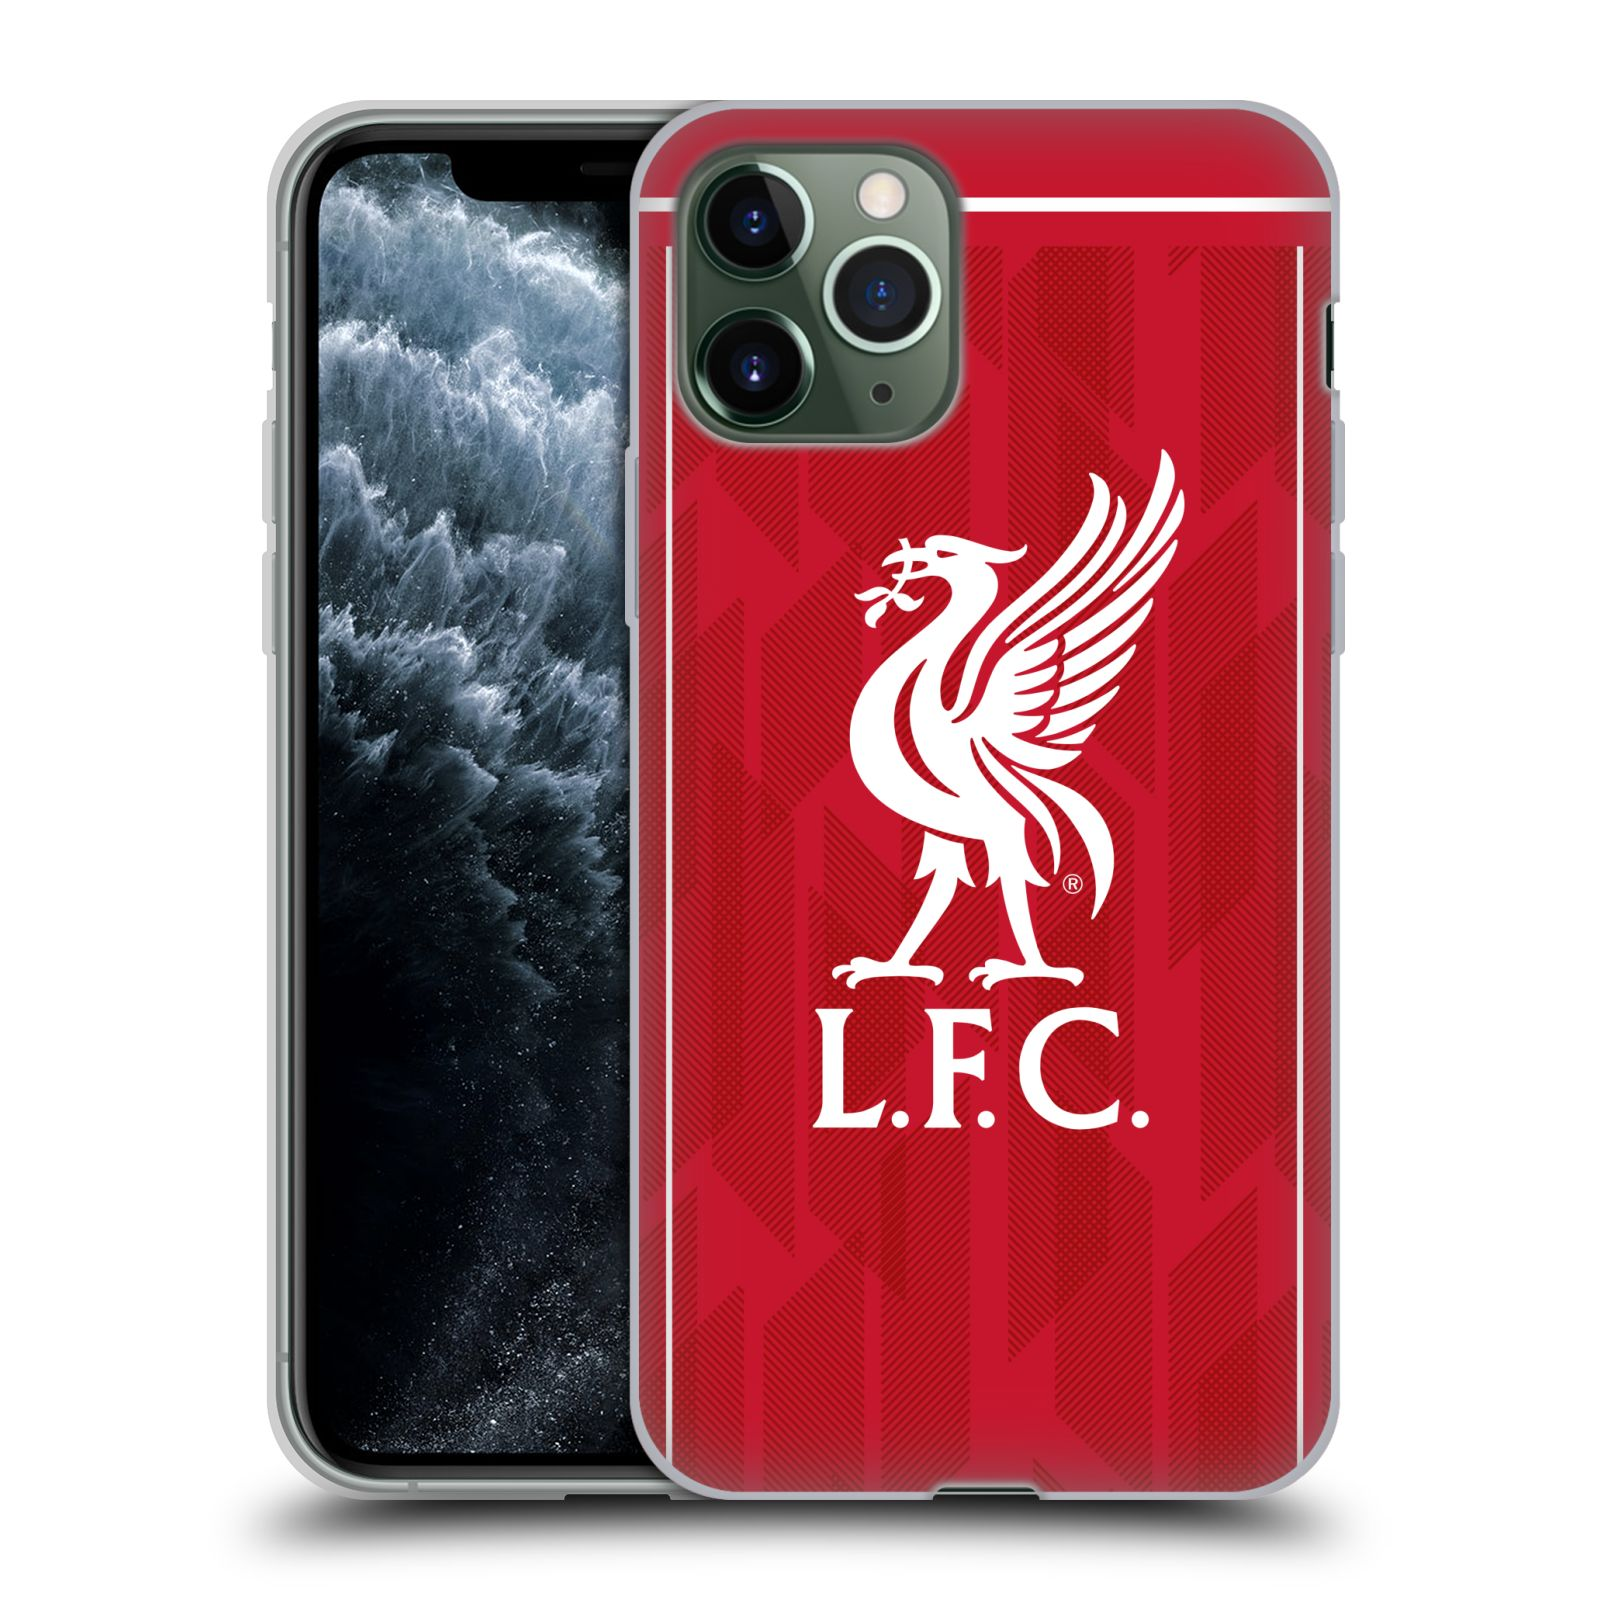 gucci phone case iphone 7 amazon - Silikonové pouzdro na mobil Apple iPhone 11 Pro - Head Case - Liverpool FC - L.F.C. Home kit